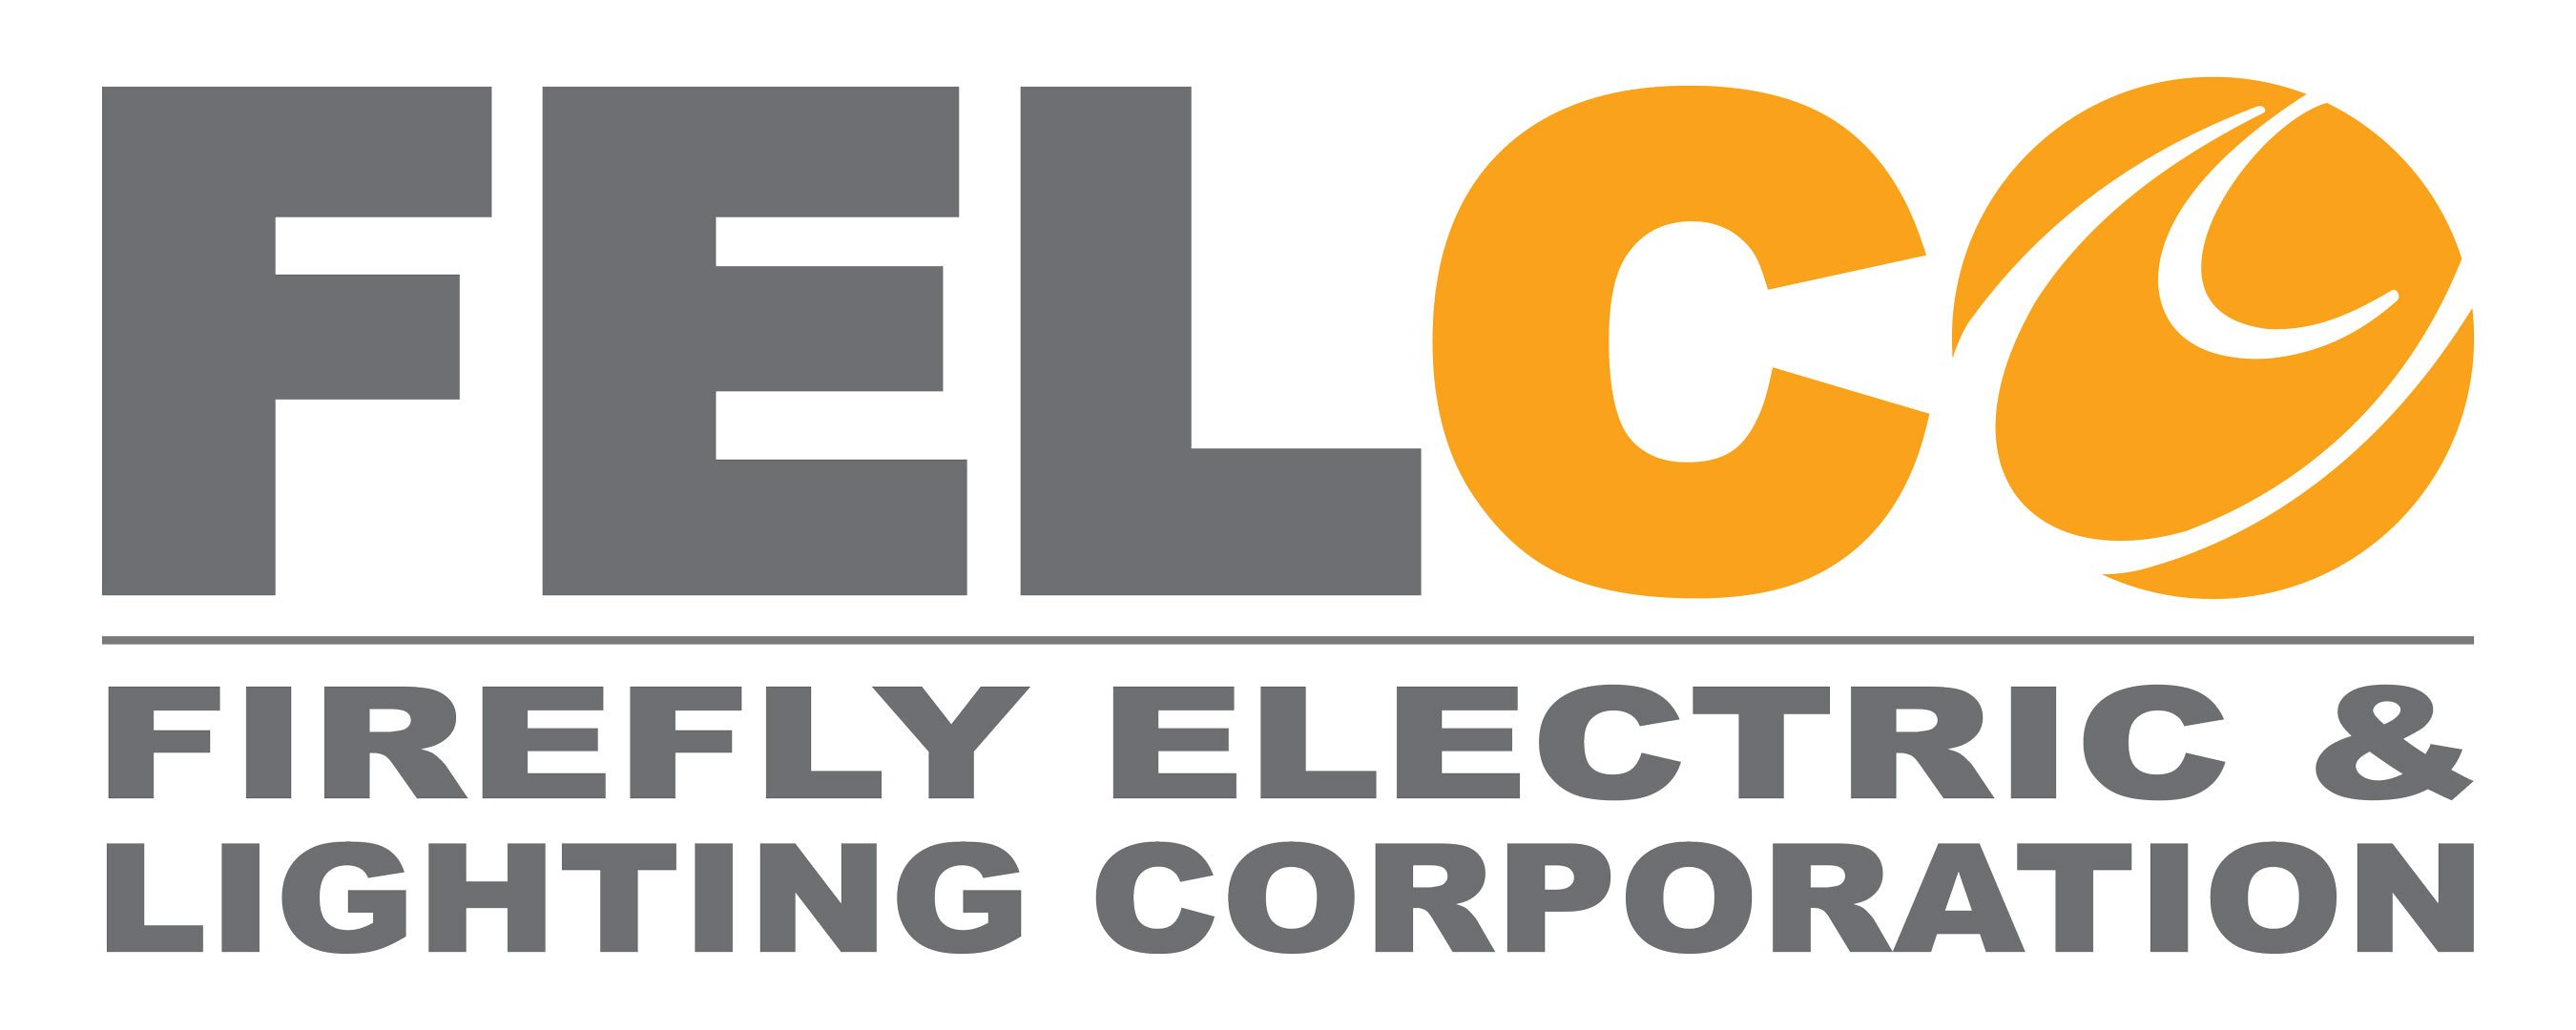 Firefly Electric & Lighting Corporation